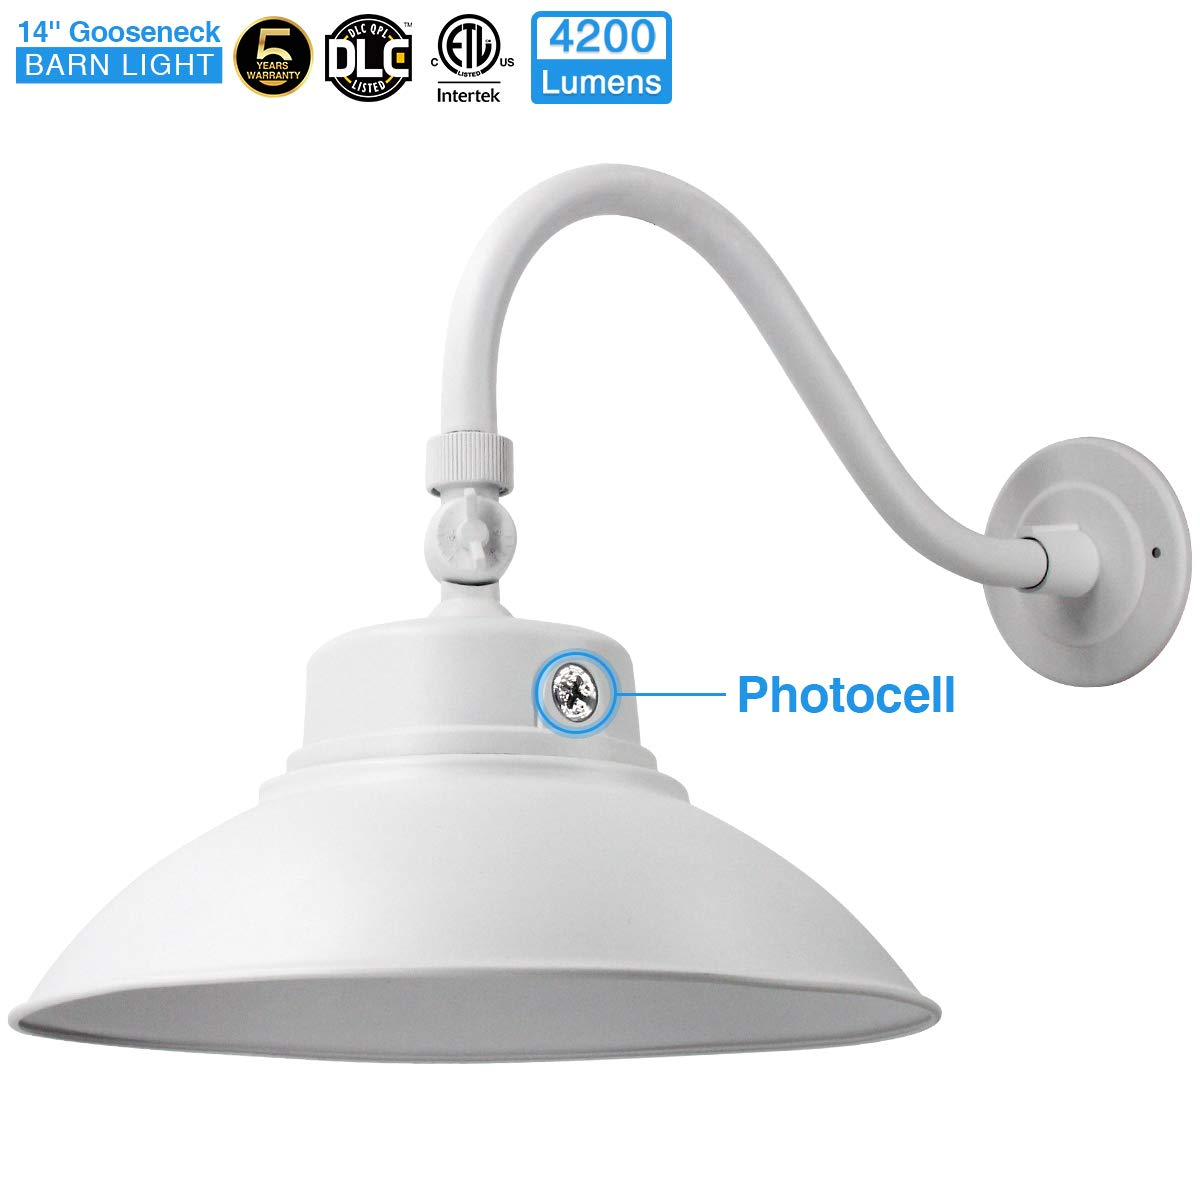 14in. White LED Gooseneck Barn Light 42W 4200lm Daylight LED Fixture for Indoor/Outdoor Use - Photocell Included - Swivel Head,Energy Star Rated - ETL Listed - Sign Lighting - 5000K Daylight 1pk02